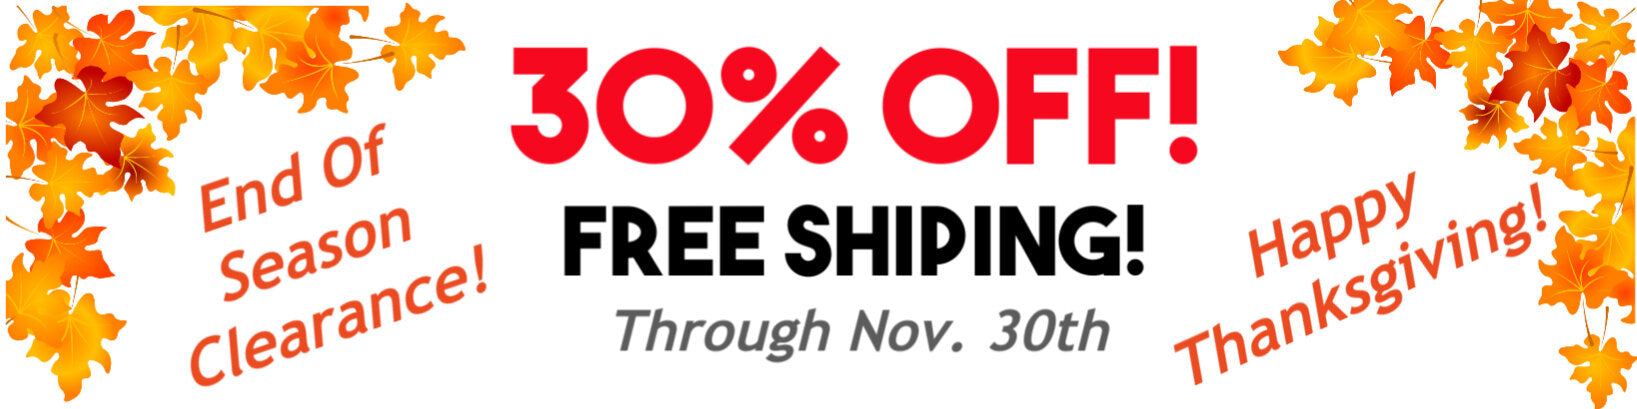 November 30 Percent Off and Free Shipping Sale Banner Through November 30th